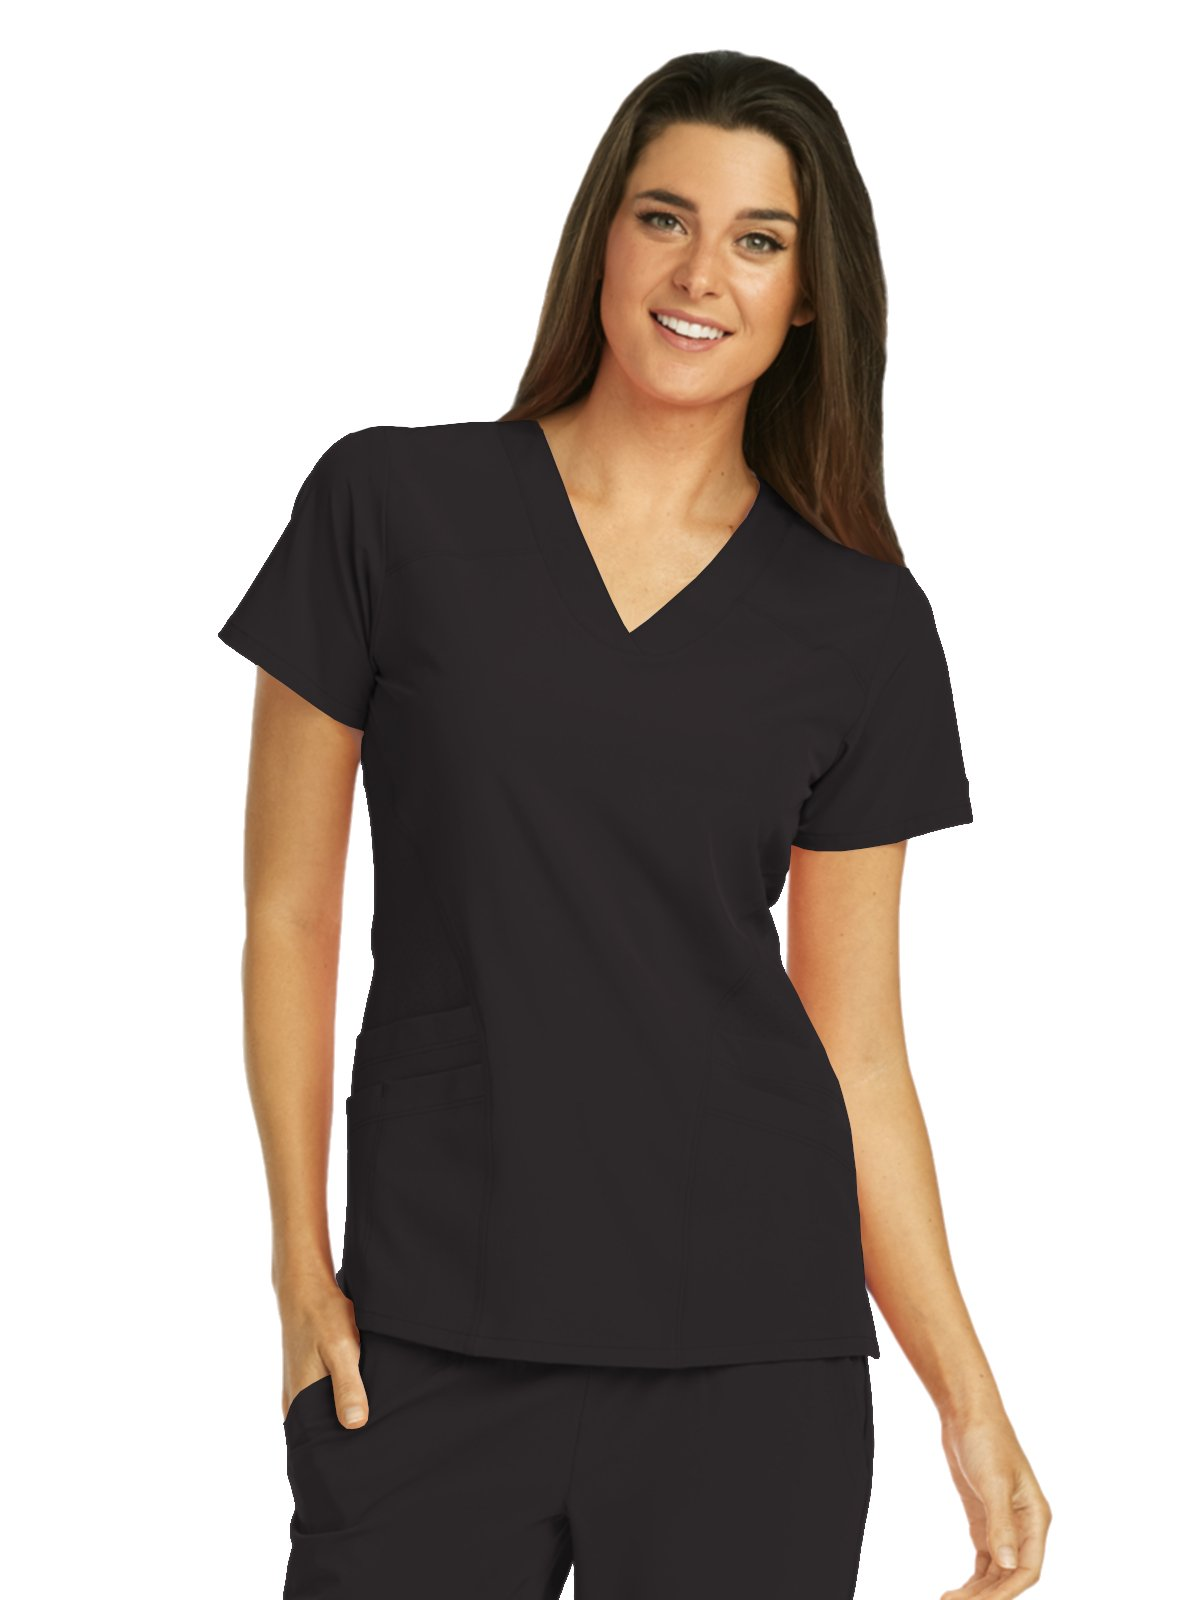 Barco One 5106 V-Neck Top Black S